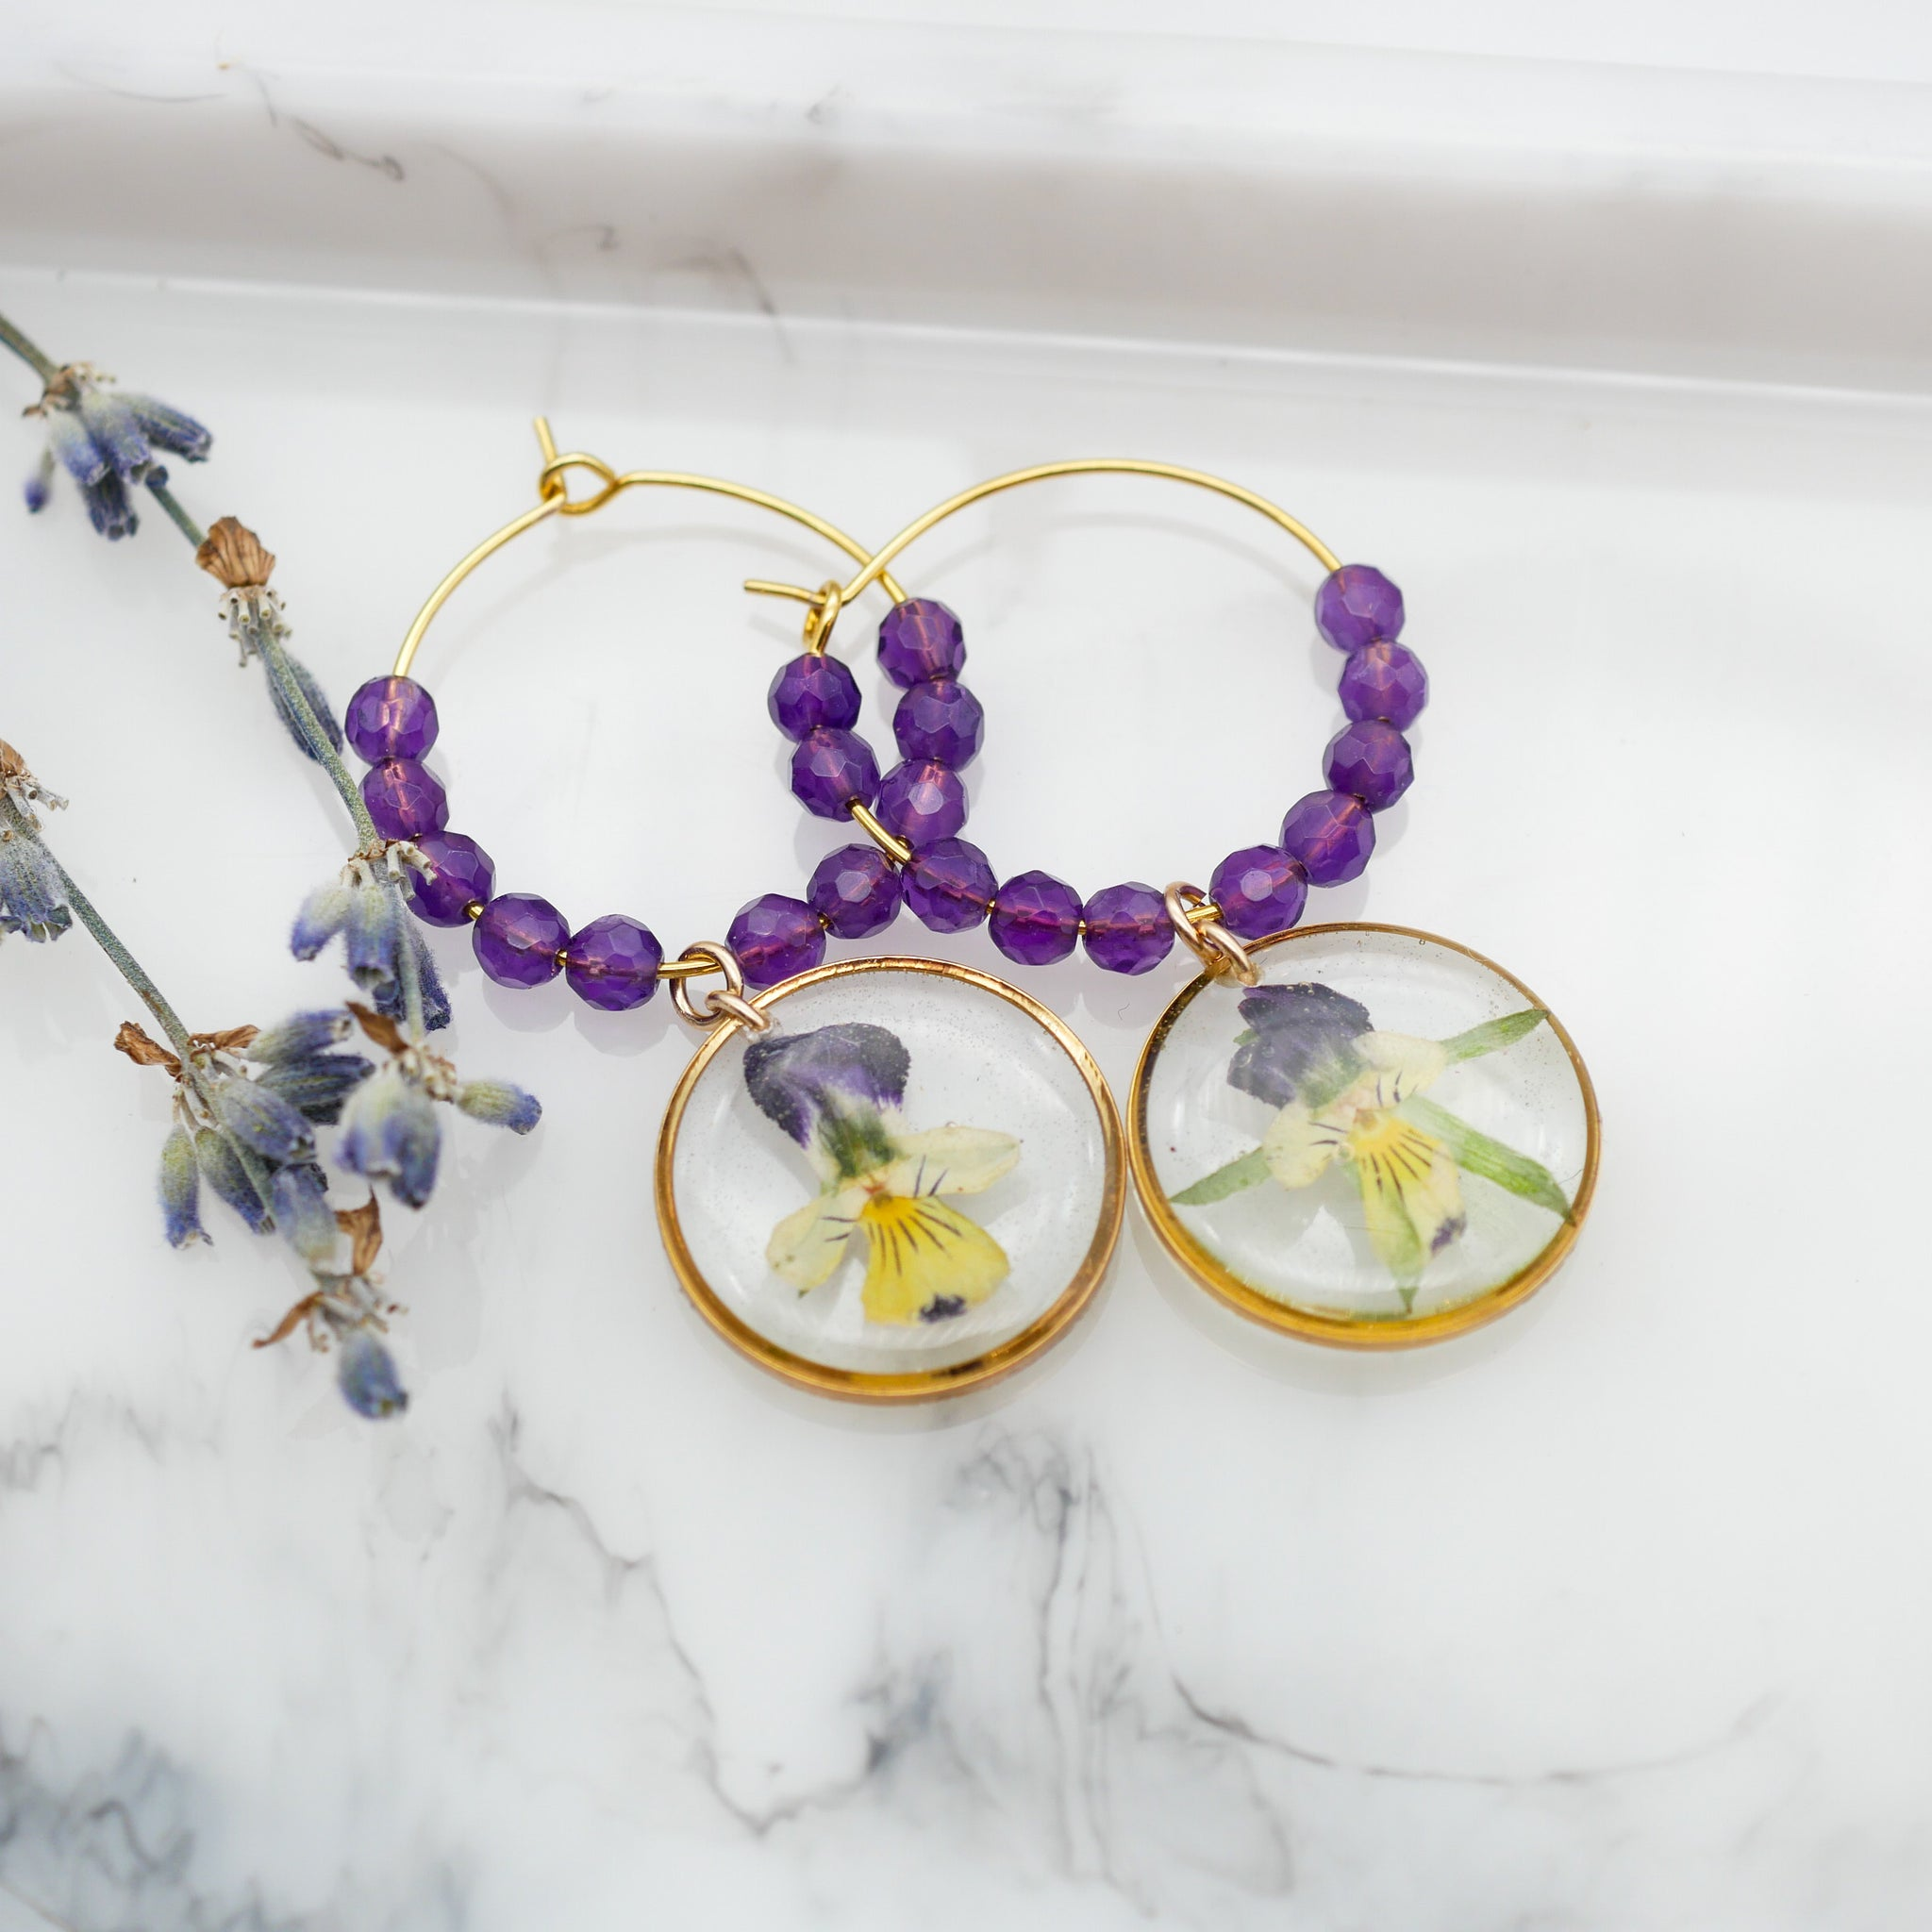 Pansy Hoop Earrings, Amethyst Hoop Earrings